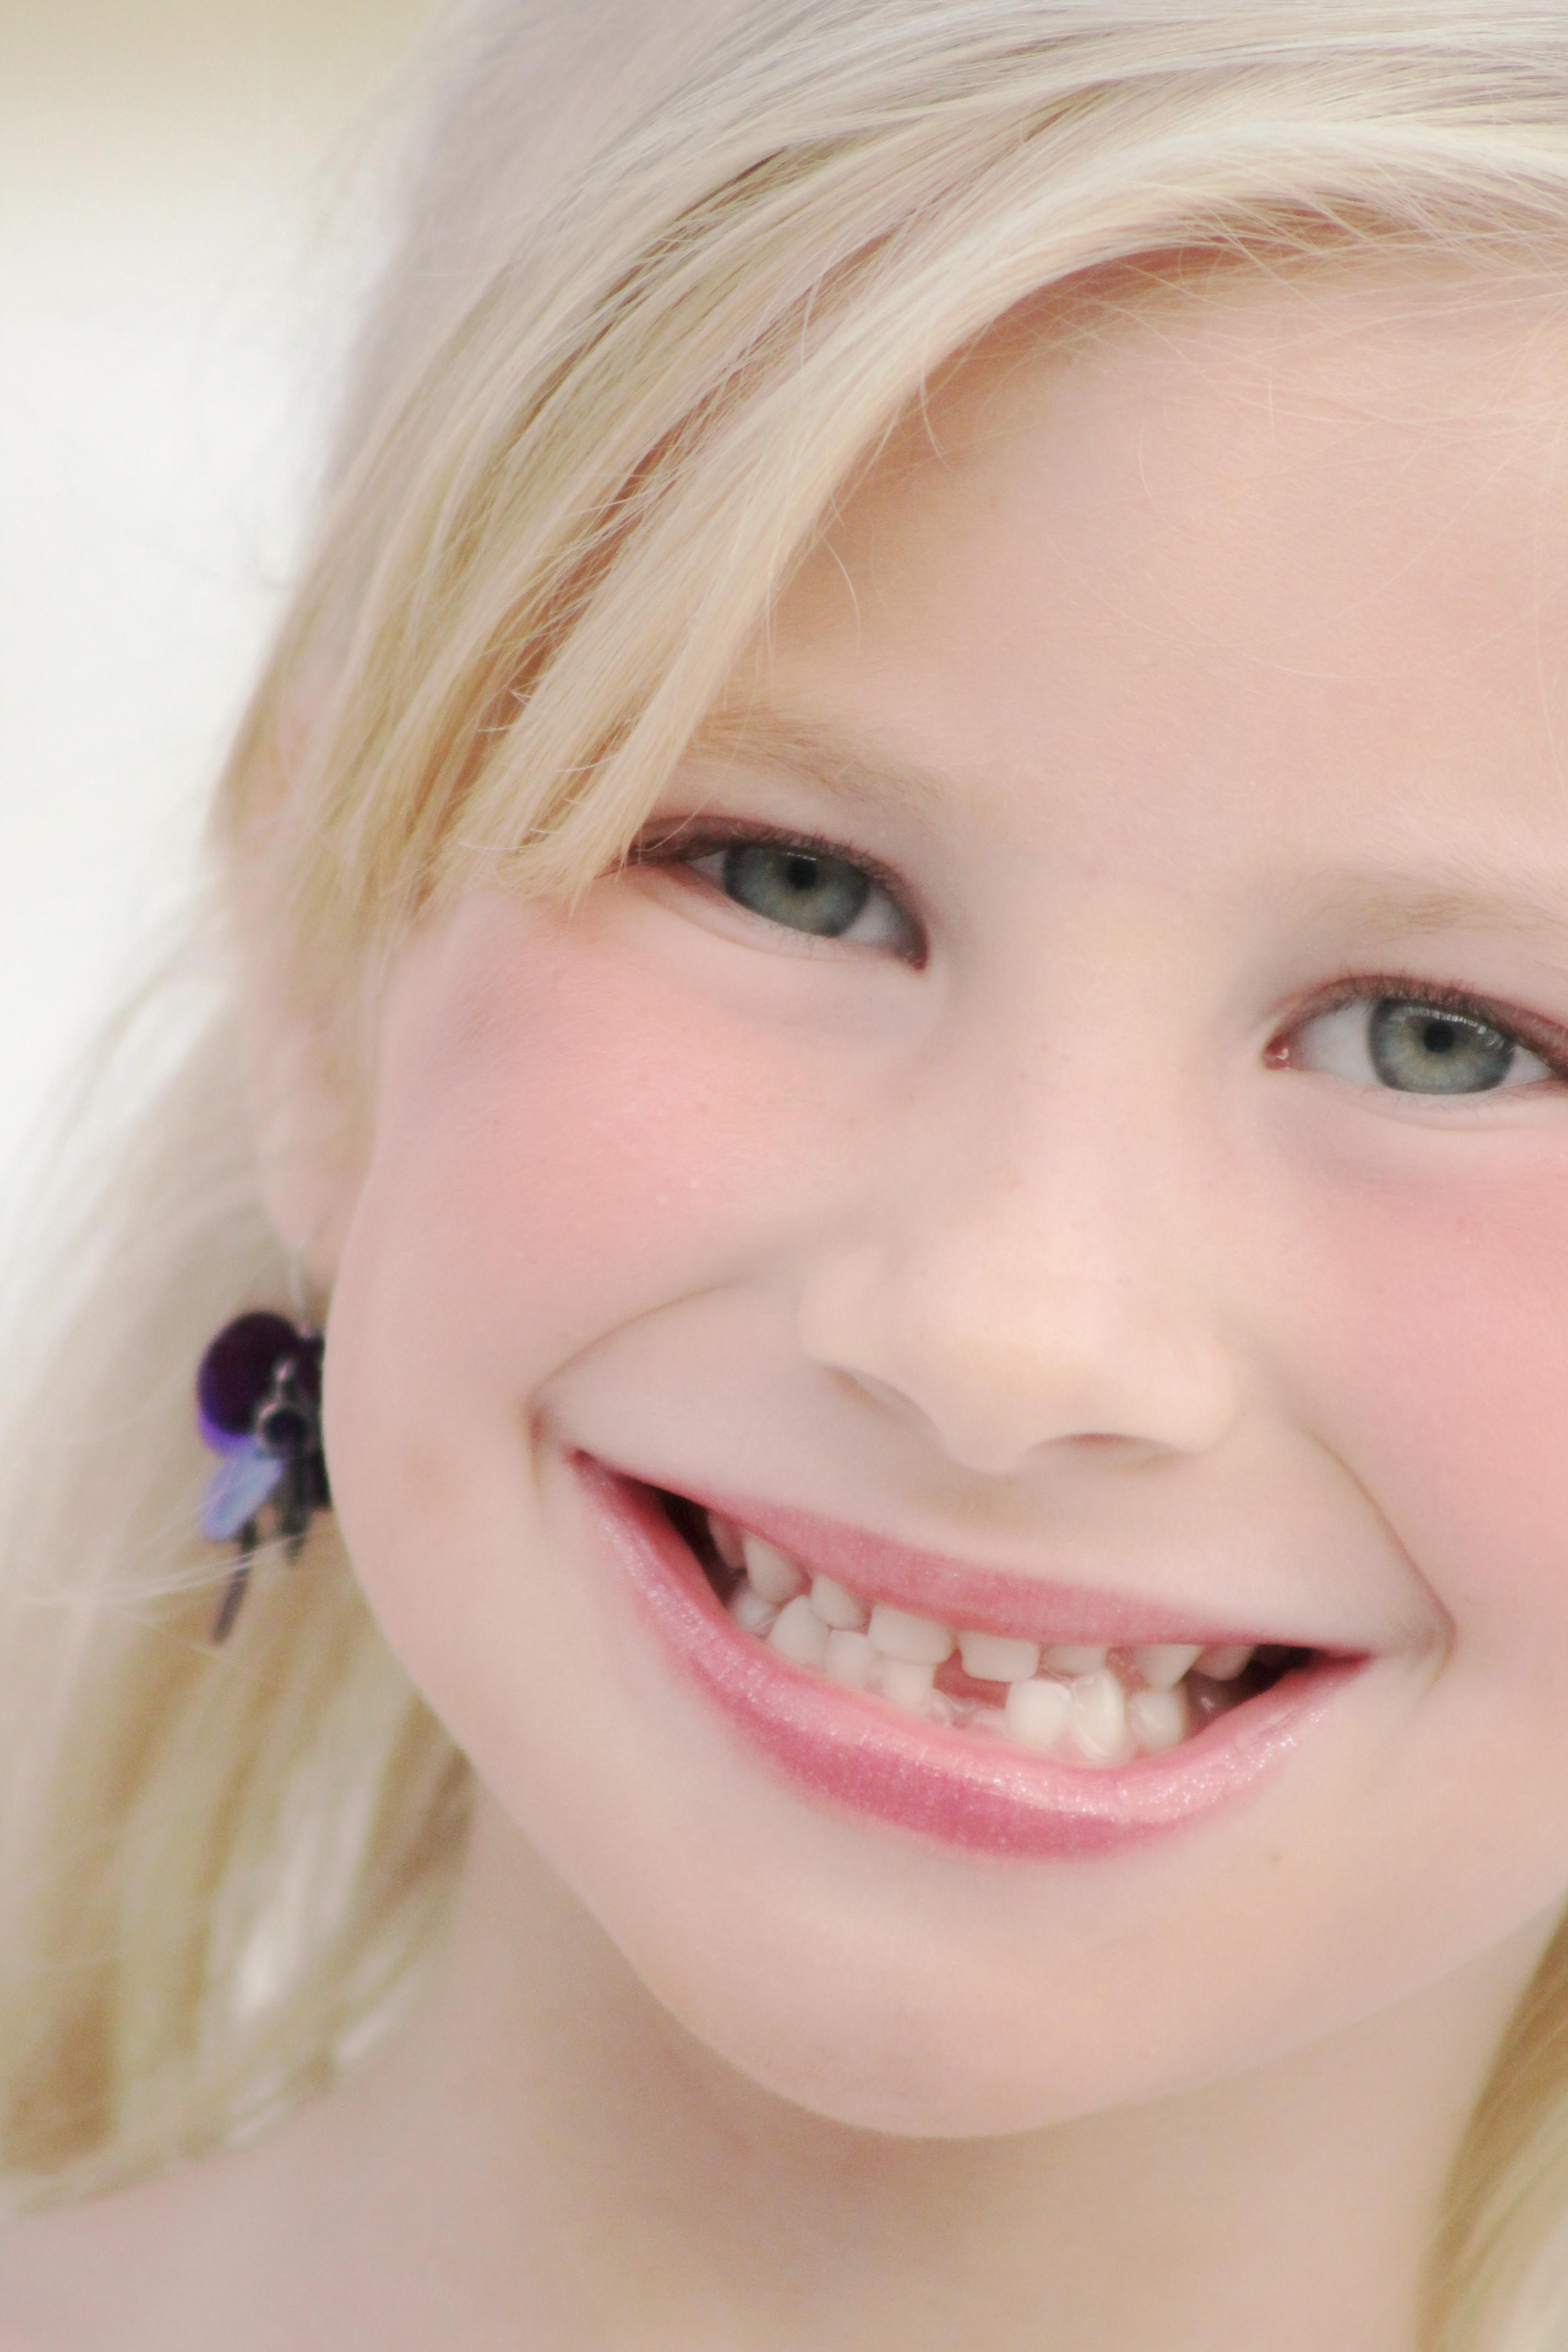 Pediatric Dentistry: What's the Difference?